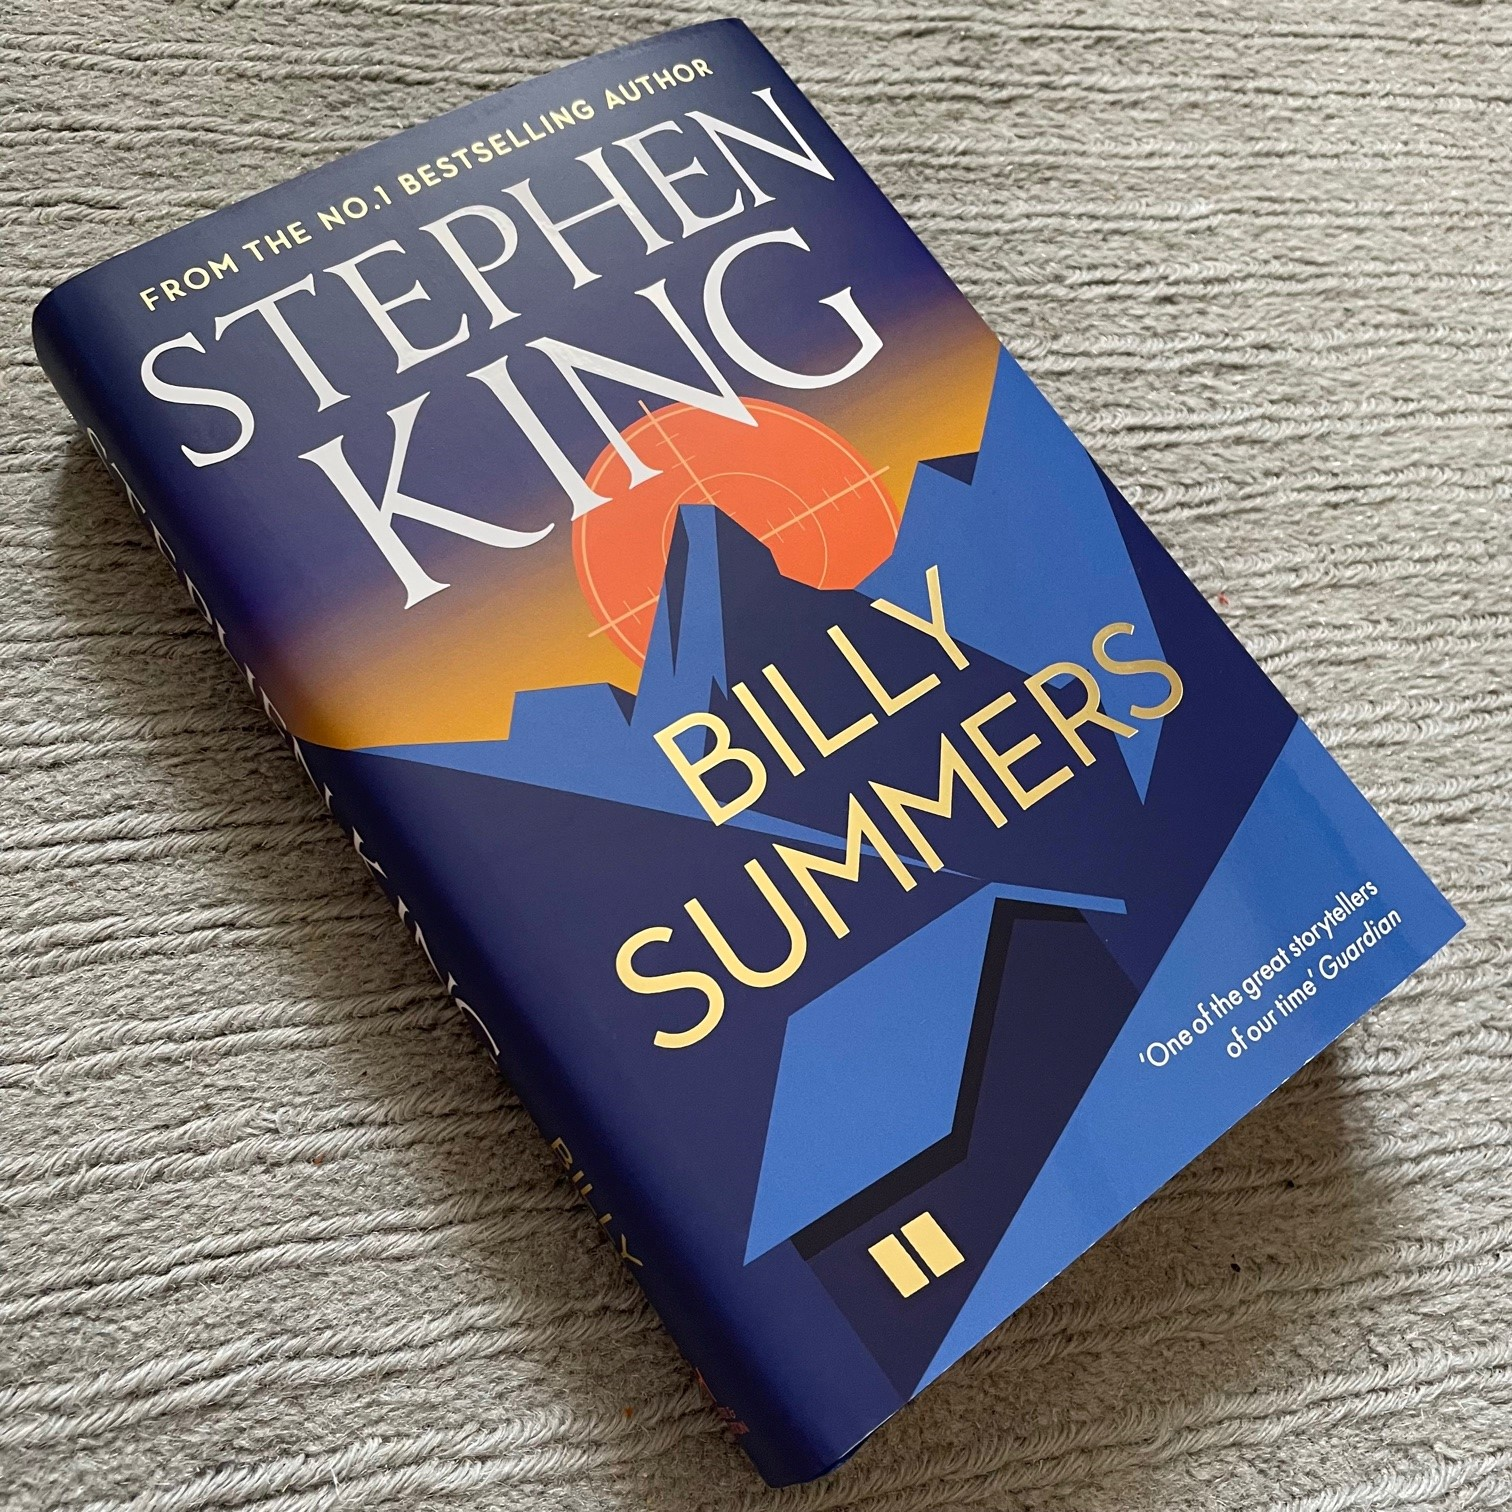 Read an extract from BILLY SUMMERS!